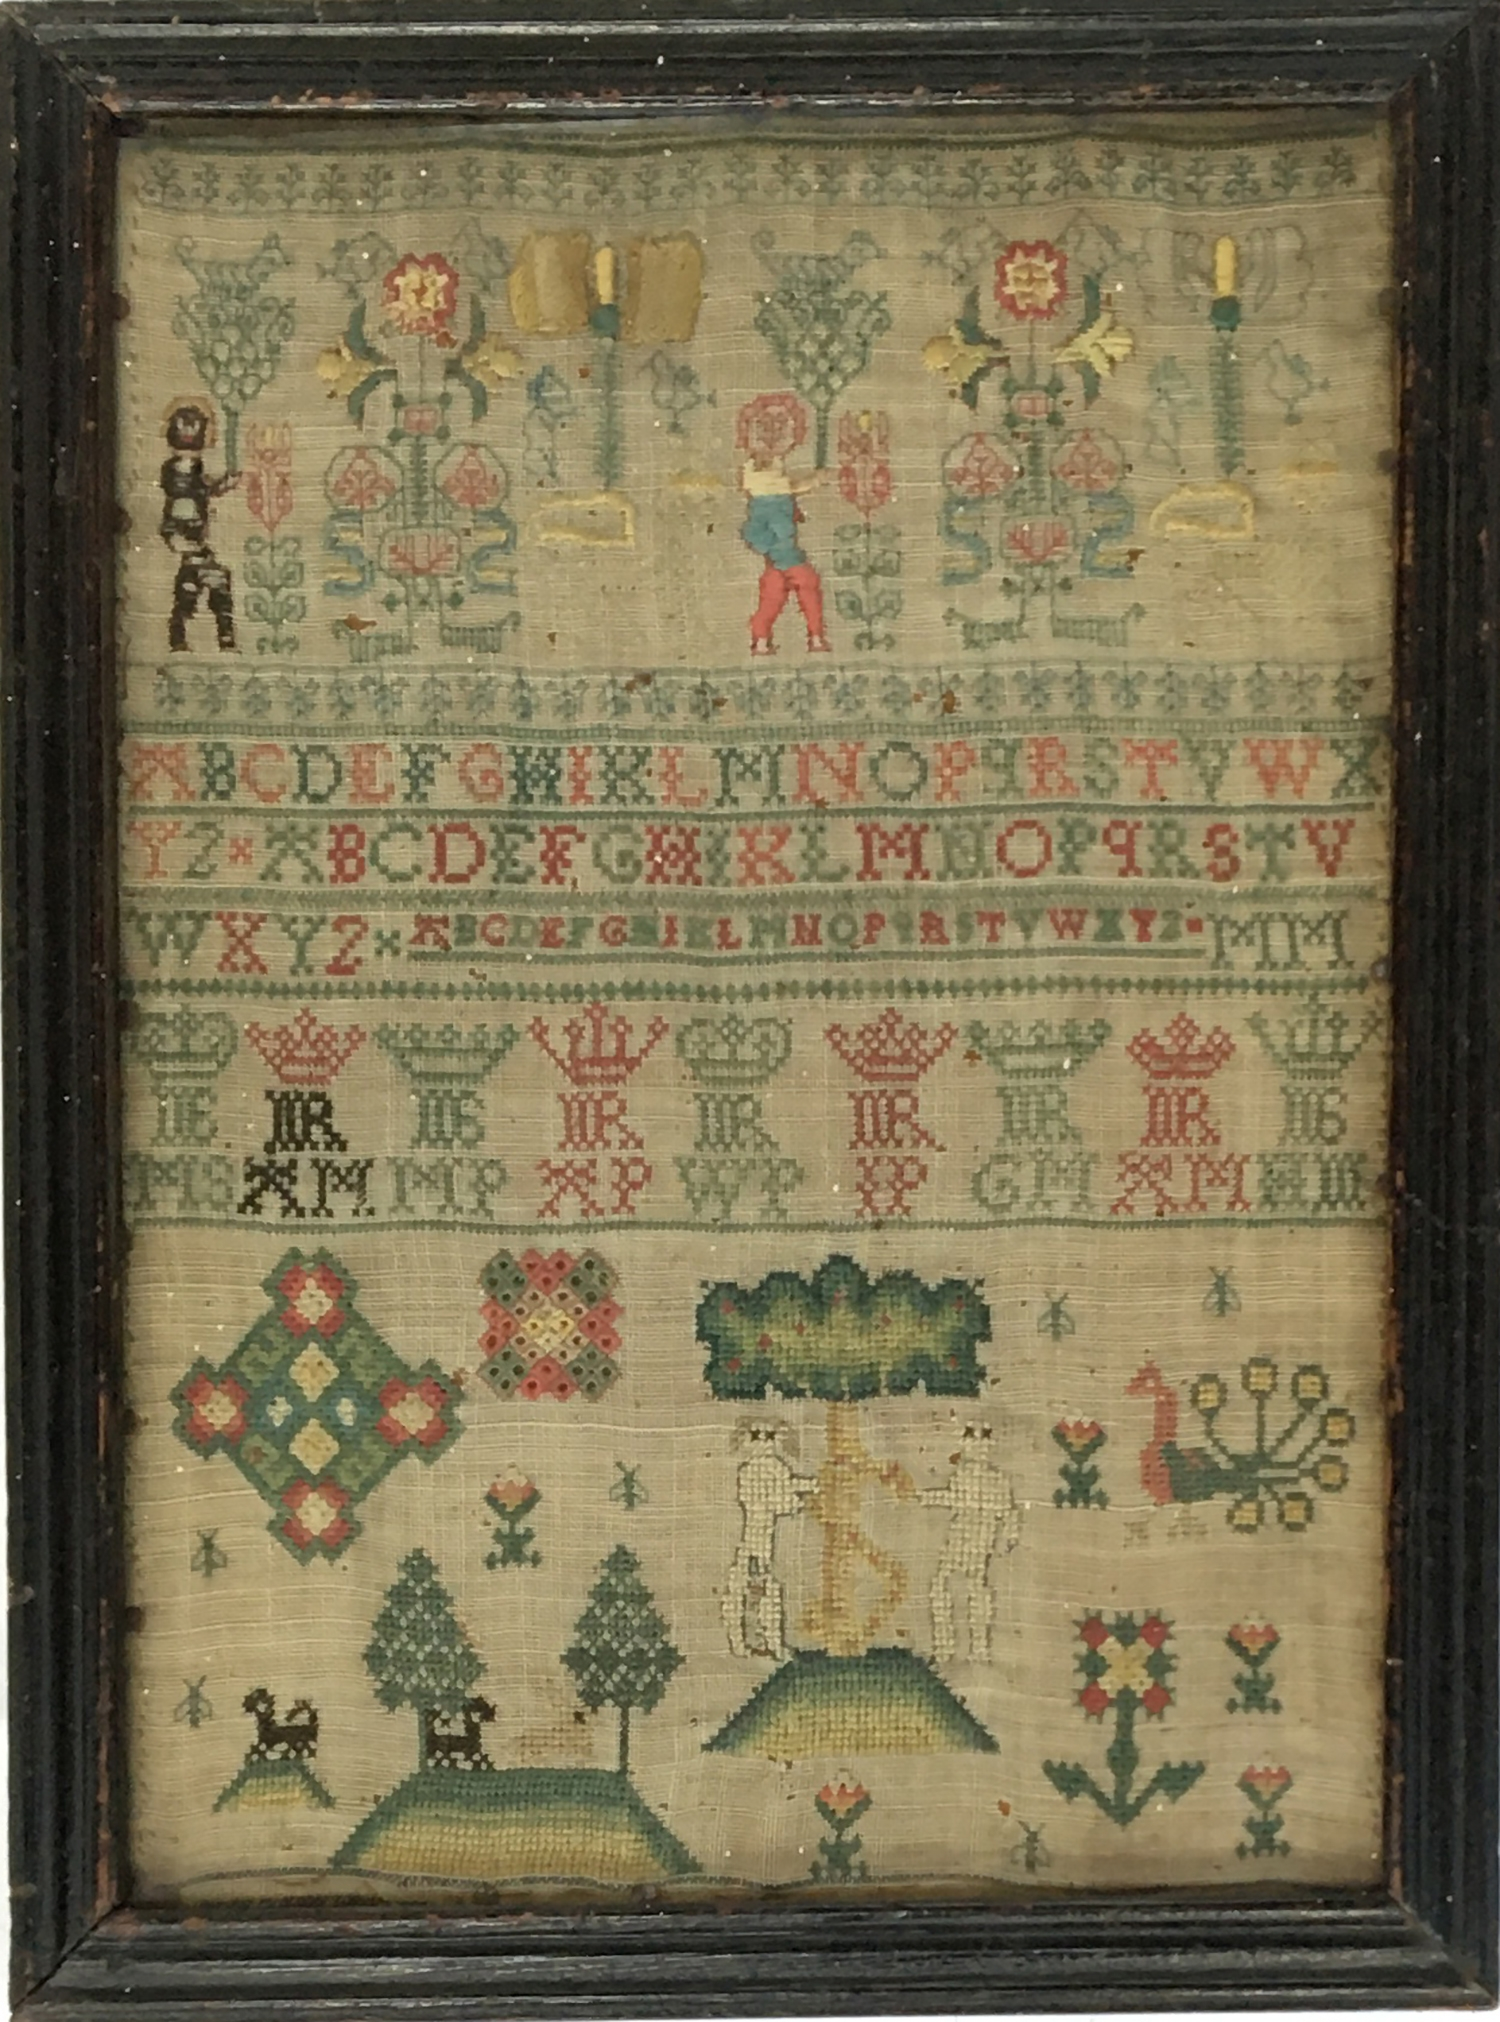 An early alphabet sampler, also worked with trees, animals, and figures, 30.5 x 22cm - Image 2 of 2